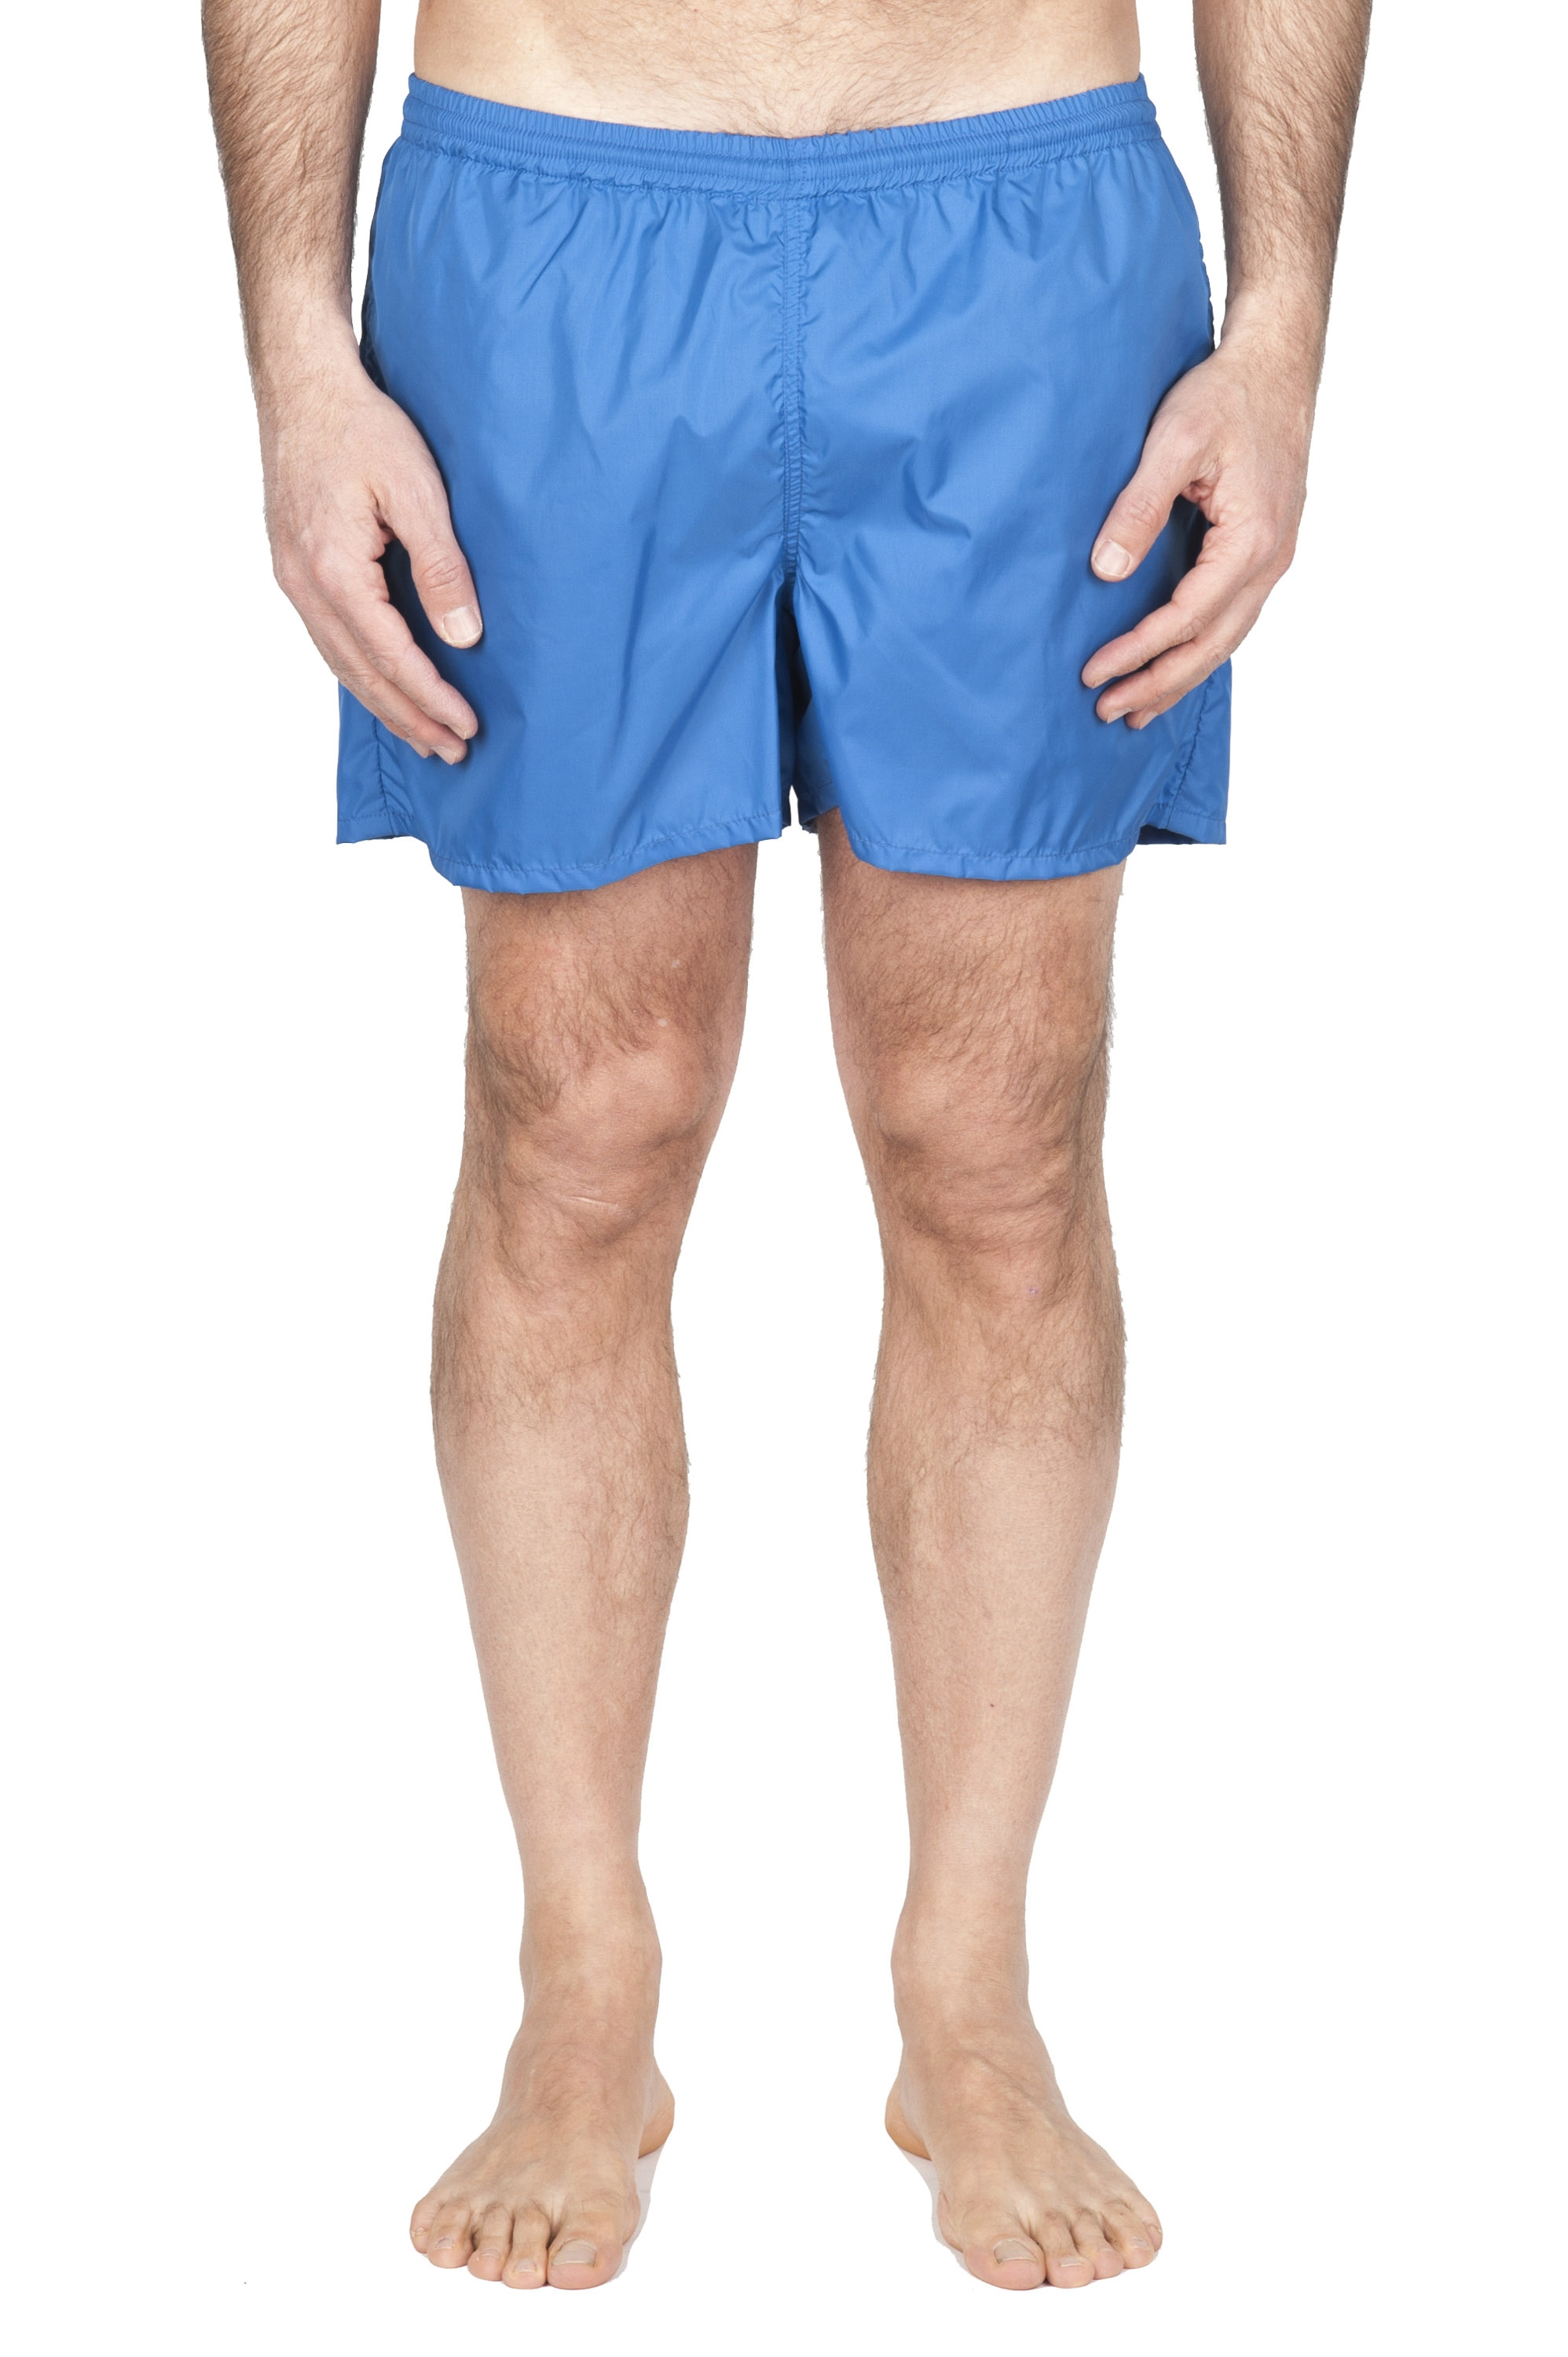 SBU 01751 Tactical swimsuit trunks in blue ultra-lightweight nylon 01